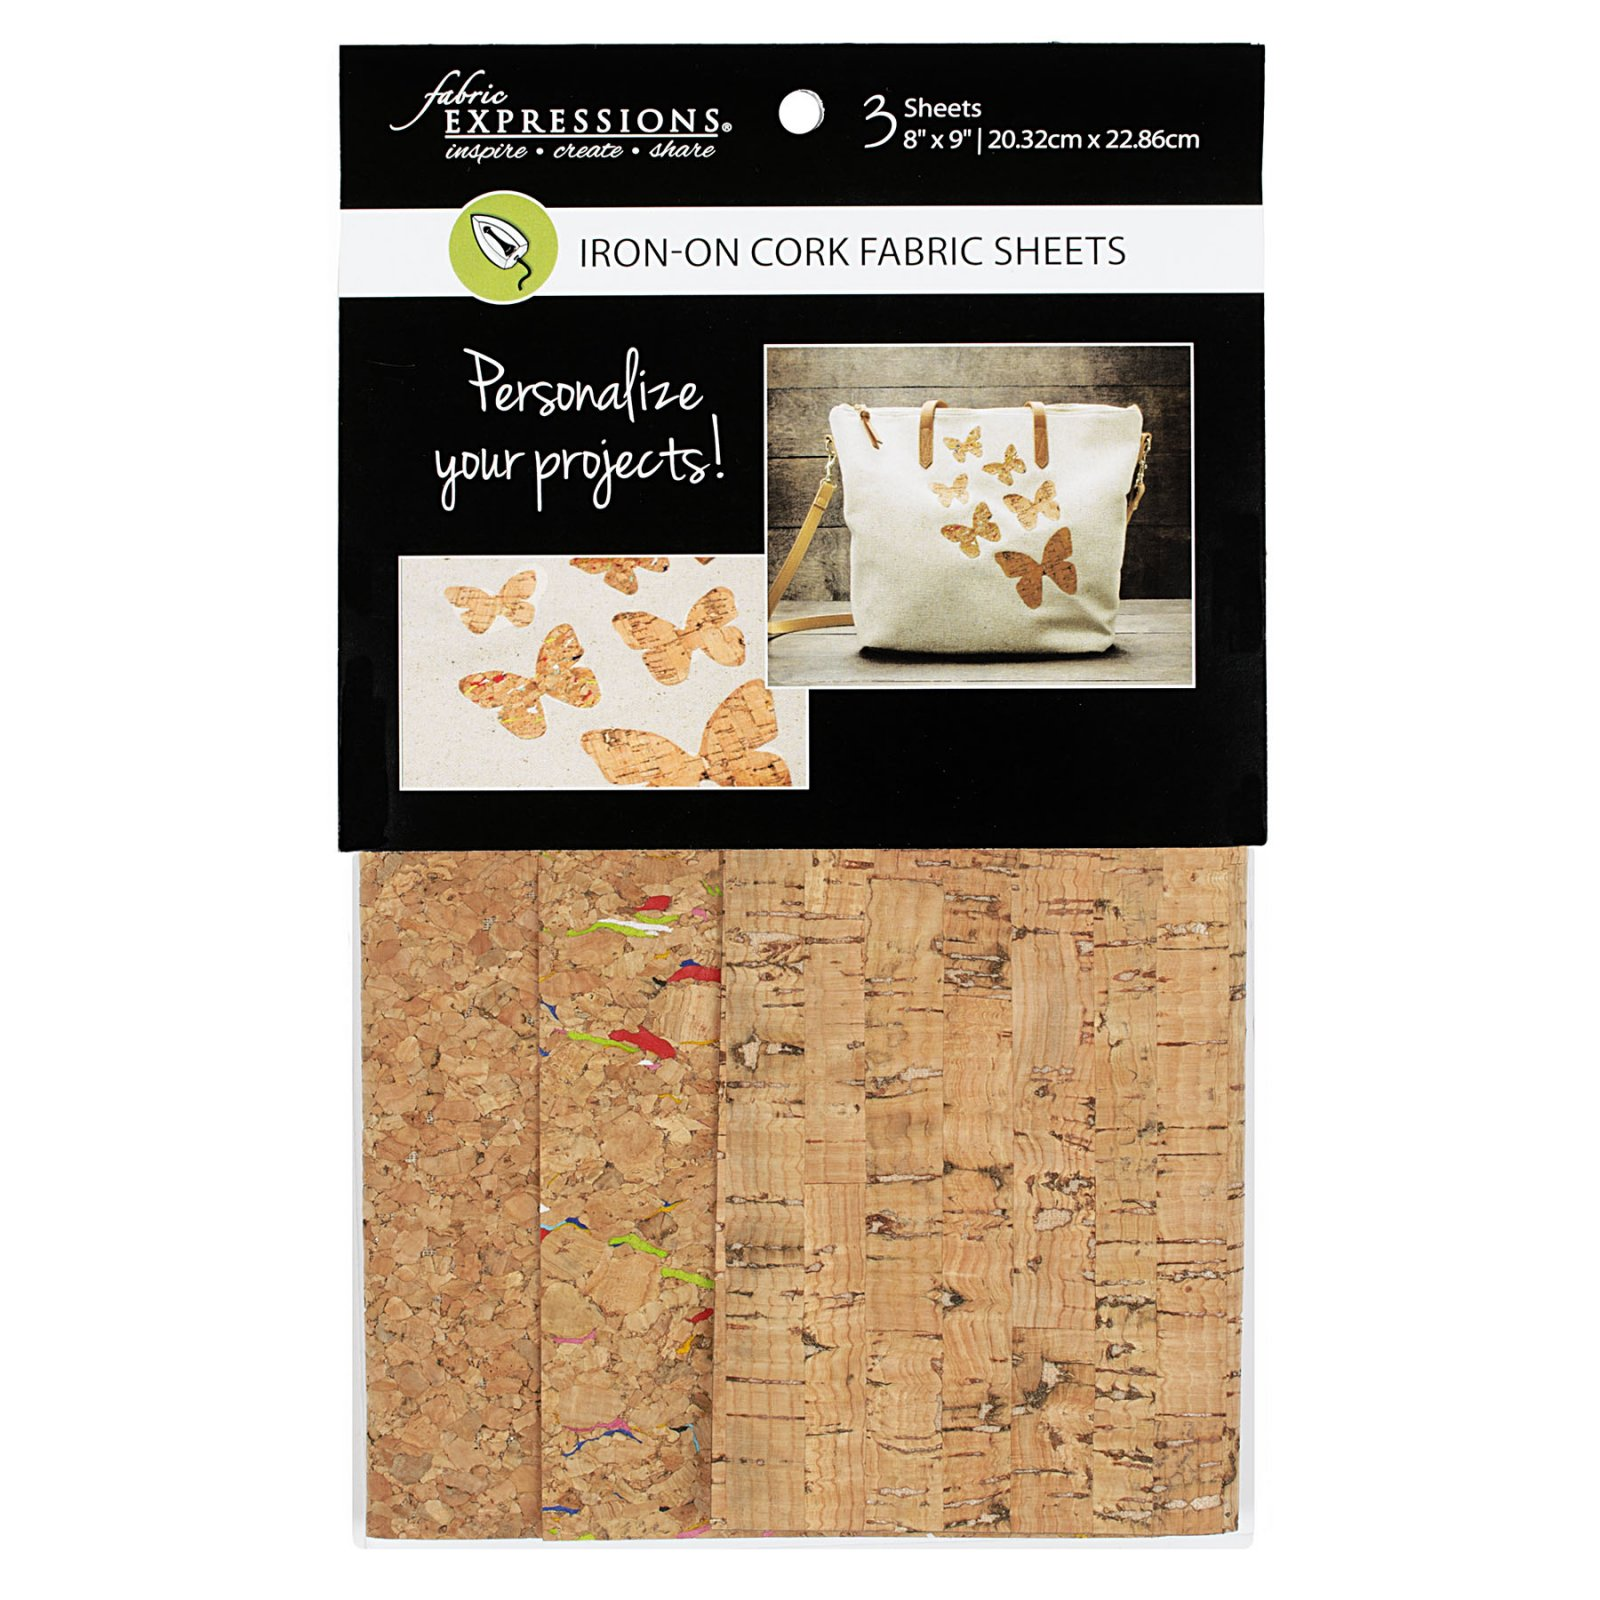 Fabric Expressions<br>6pc Iron-on Fabric Sheets - 8 x 9<br>Cork<br>FE-FS-SP5-CRK3PC